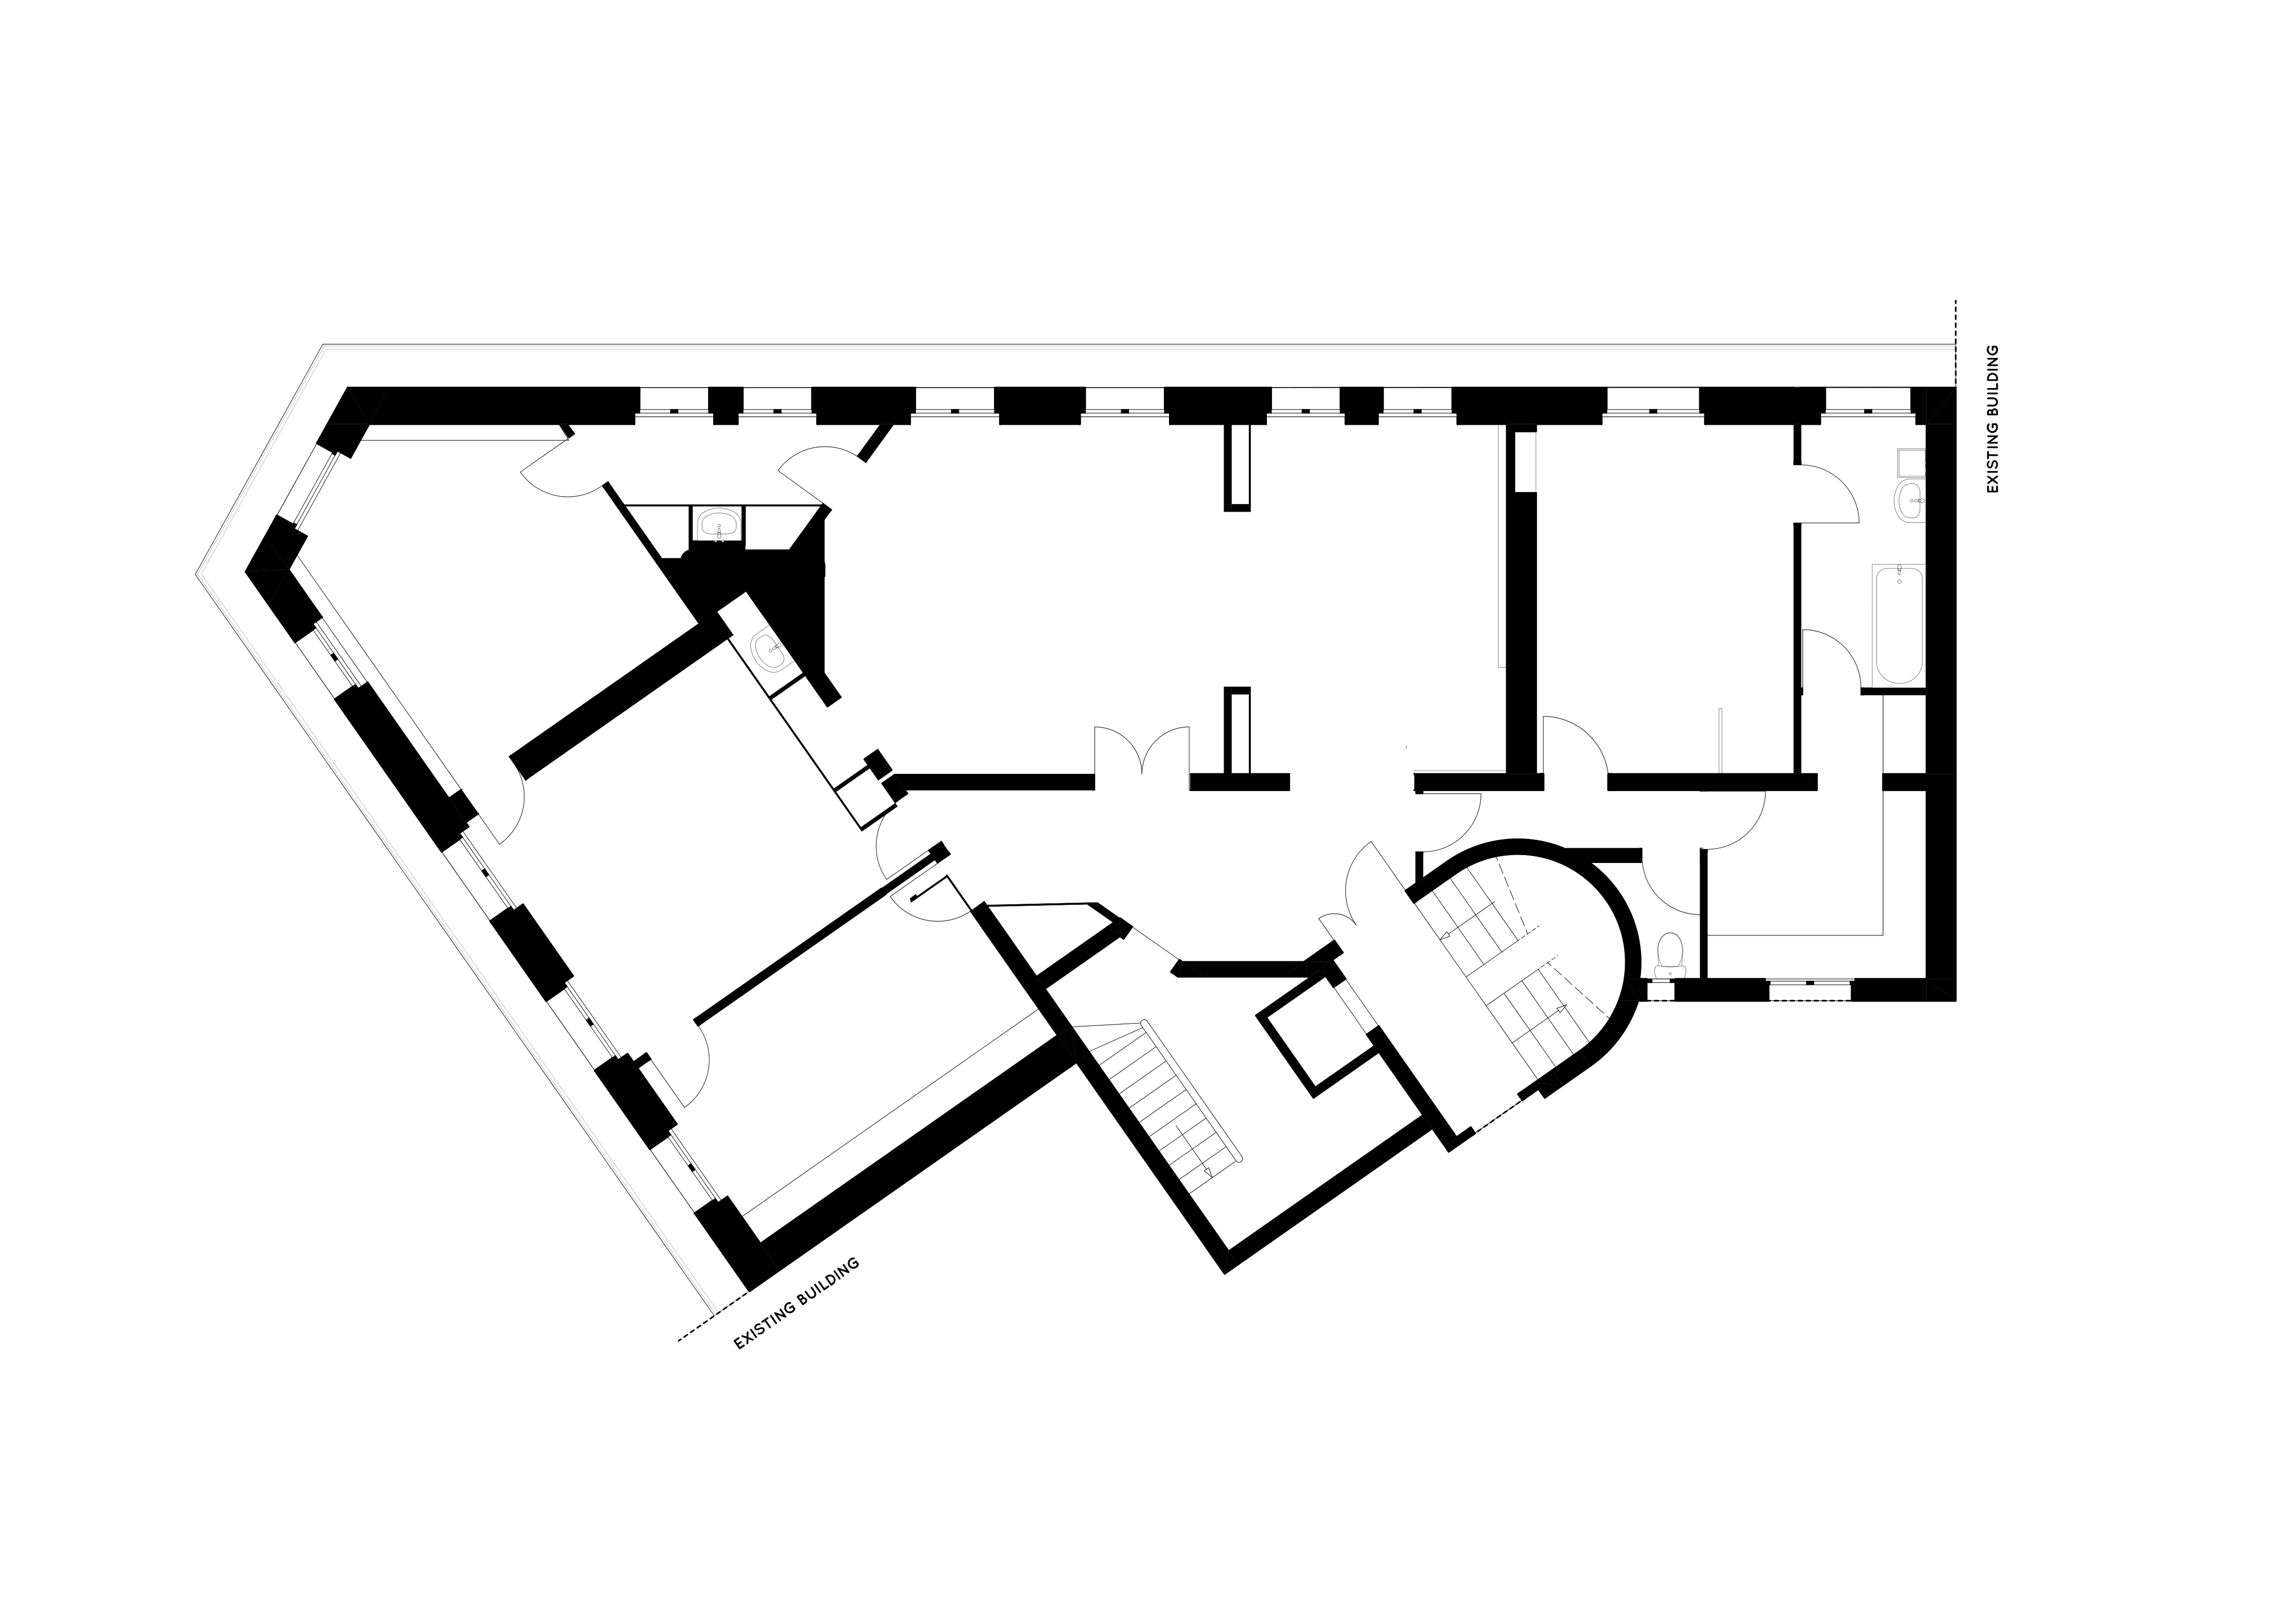 TRDN-Plan-existant-1